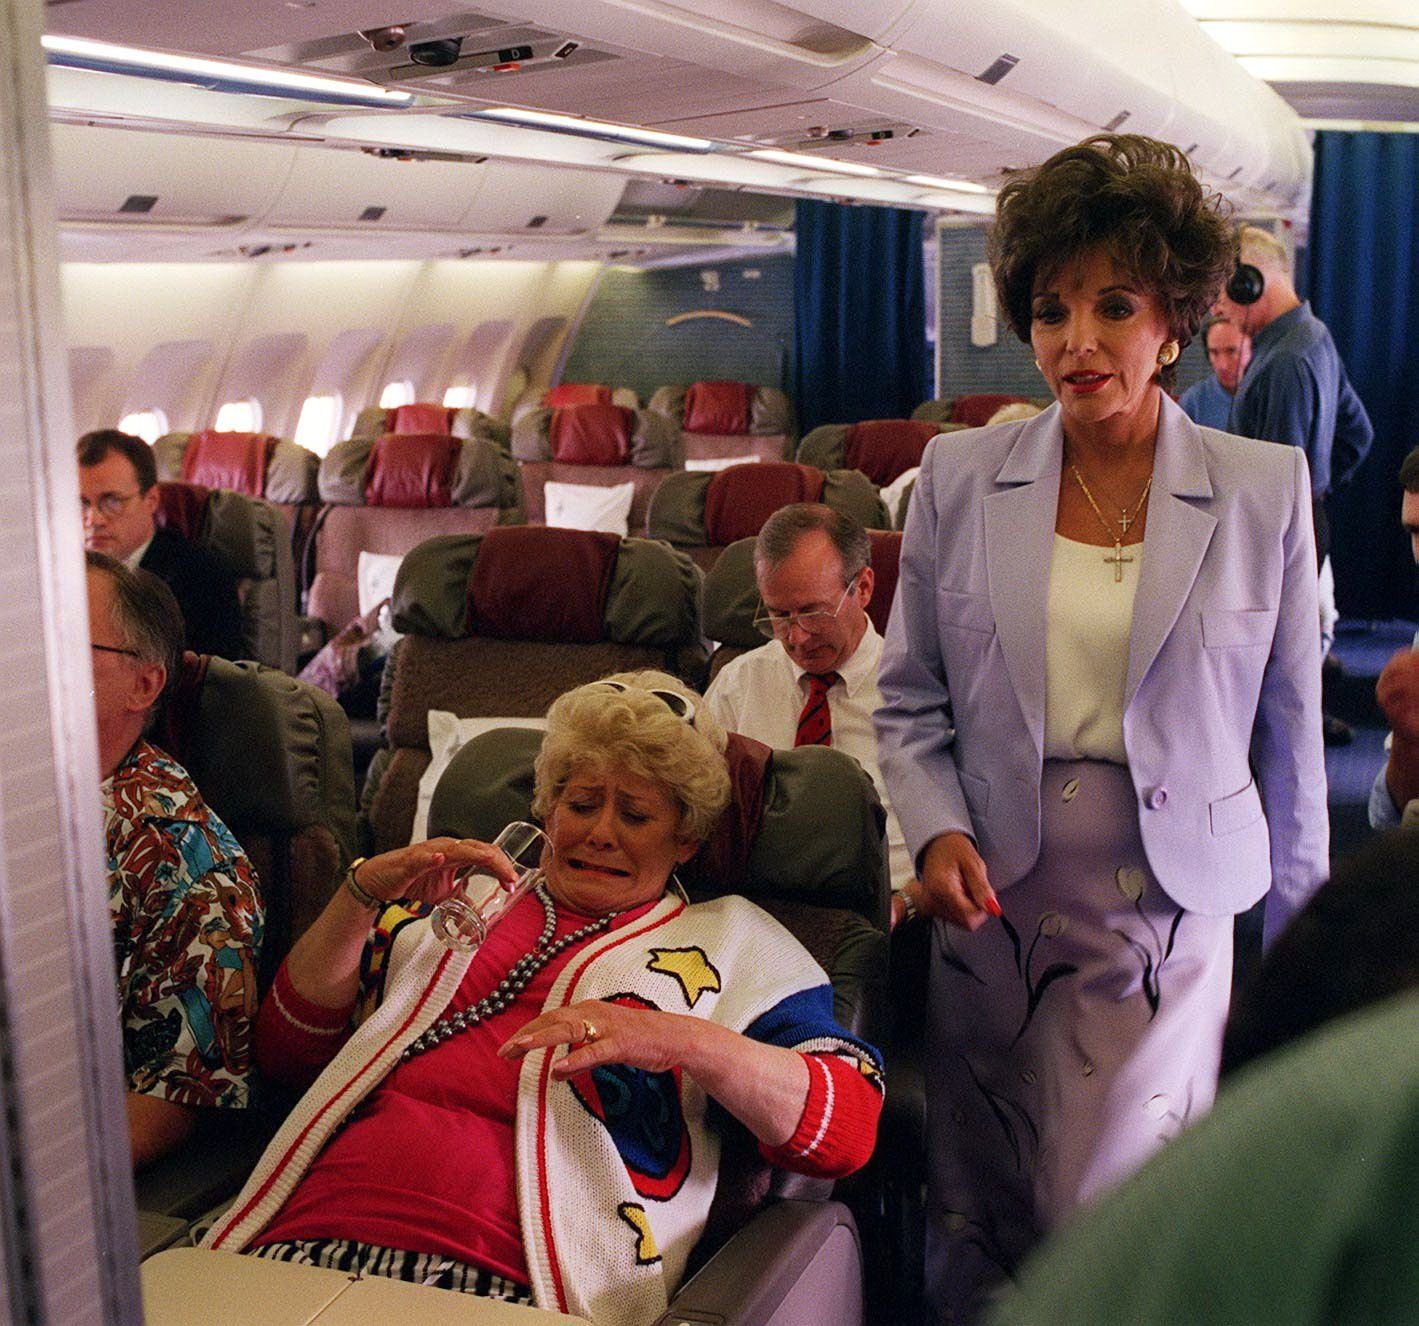 Editorial use only. Exclusive - Premium Rates Apply. Call your Account Manager for pricing. Mandatory Credit: Photo by ITV/REX/Shutterstock (852820nl) 'Coronation Street' TV - 1997 - Las Vegas - Vera Duckworth [Liz Dawn] on plane with Joan Collins. ITV ARCHIVE